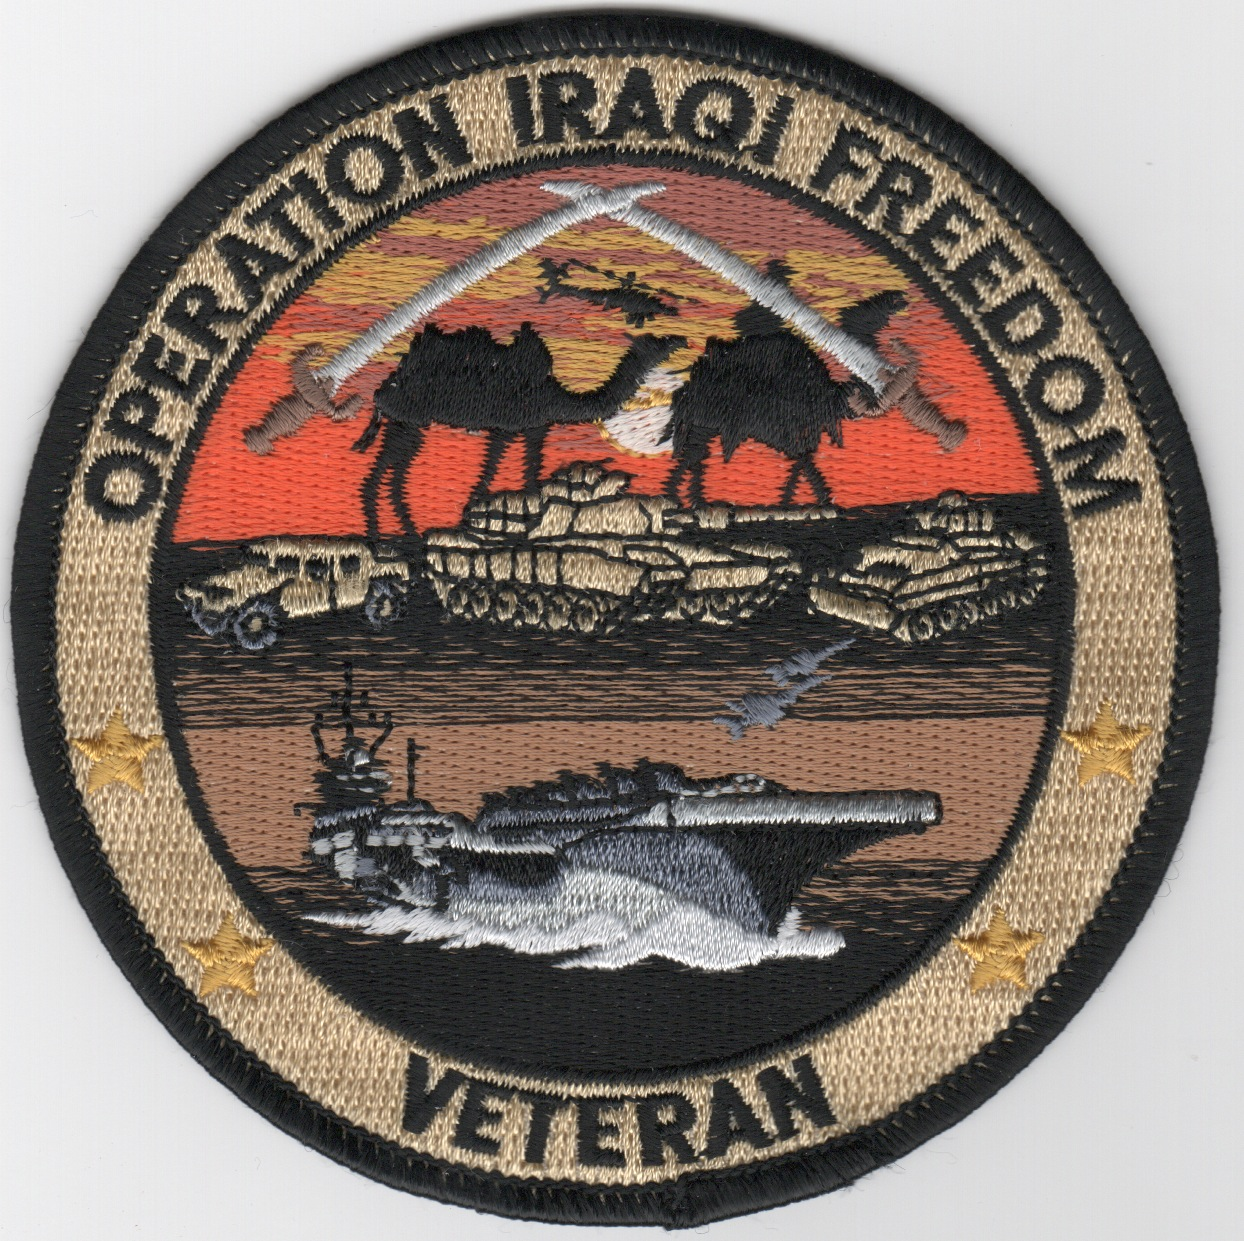 Operation IRAQI FREEDOM (Army/CVN/Round)